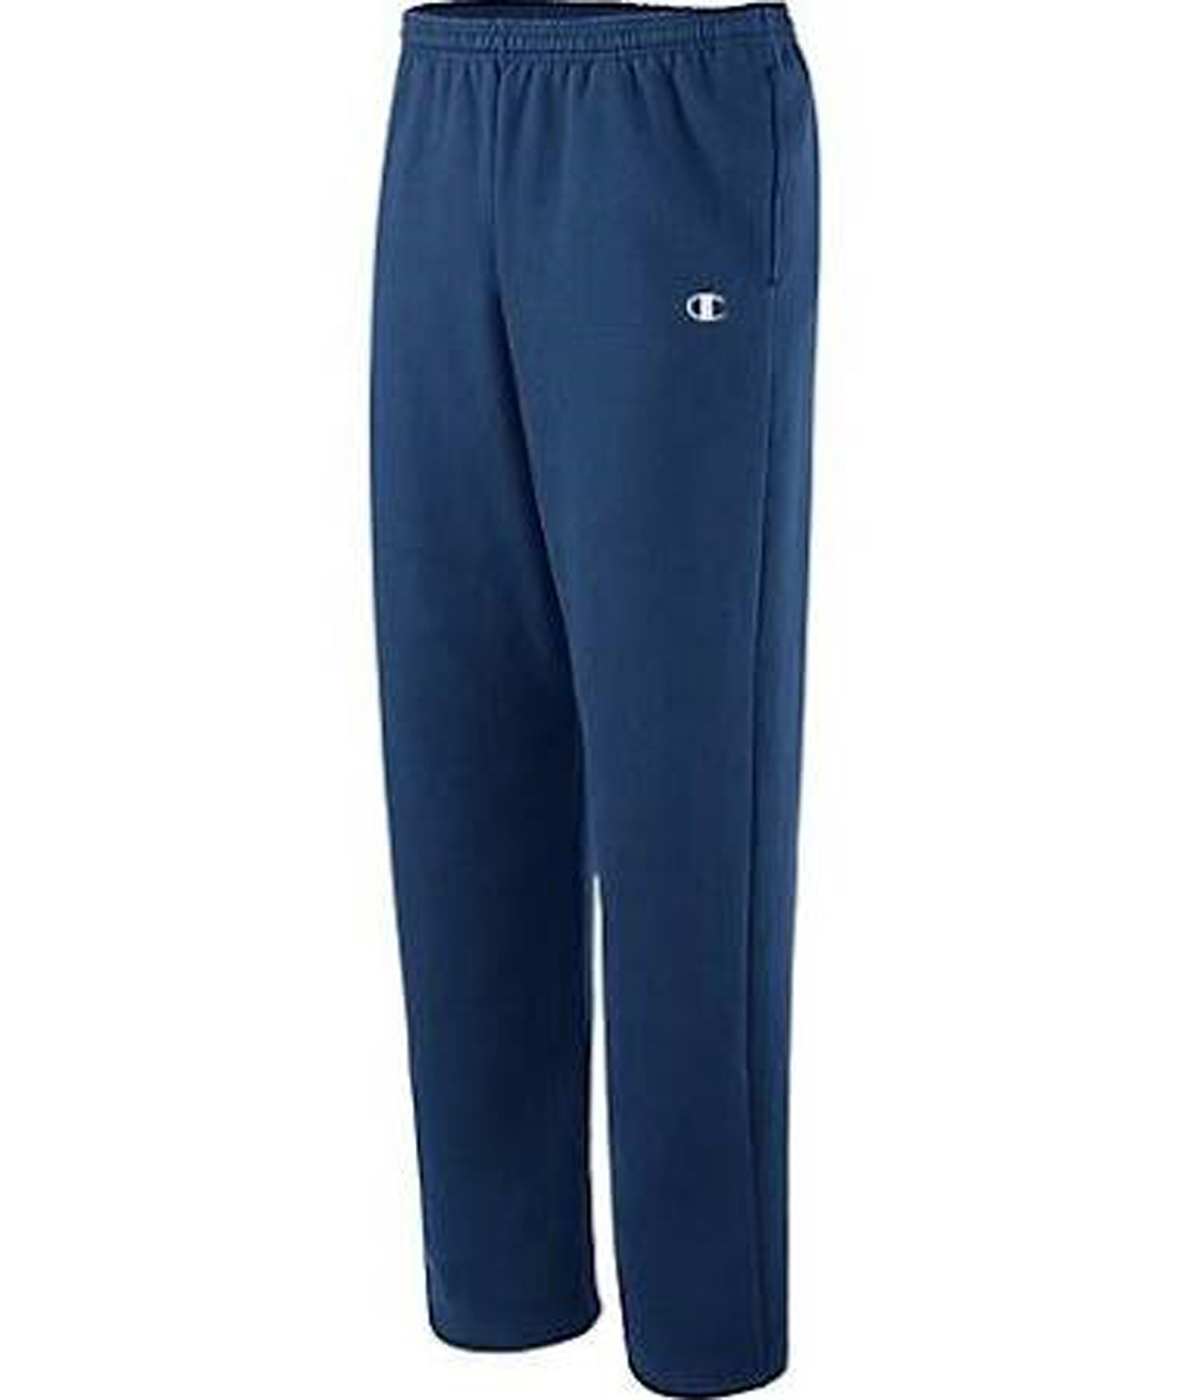 Champion Men's Open Bottom Eco Fleece Sweatpant - Small - Navy - 70087 - Basketball Basketballs Balls Color Rubber Basketballs 70087